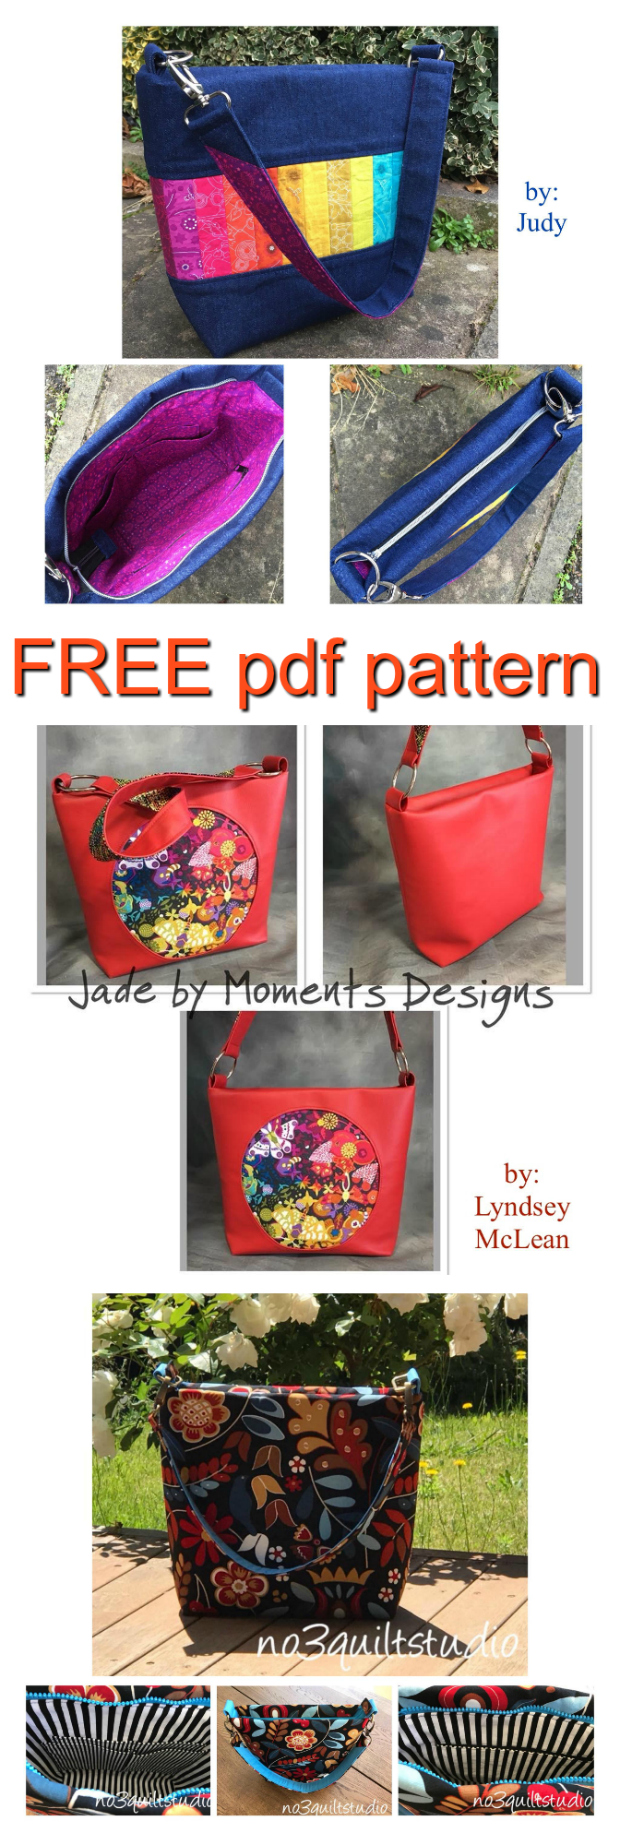 "Here is a FREE pdf pattern to make a medium-sized purse called ""Jade"". This fast, easy pattern can be made with cotton, denim, decorator fabrics, cork or faux leather. Jade can be completed by a confident beginner to intermediate sewer and she will measure approximately 12"" wide by 10 1⁄2"" high by 4 1⁄2"" deep."